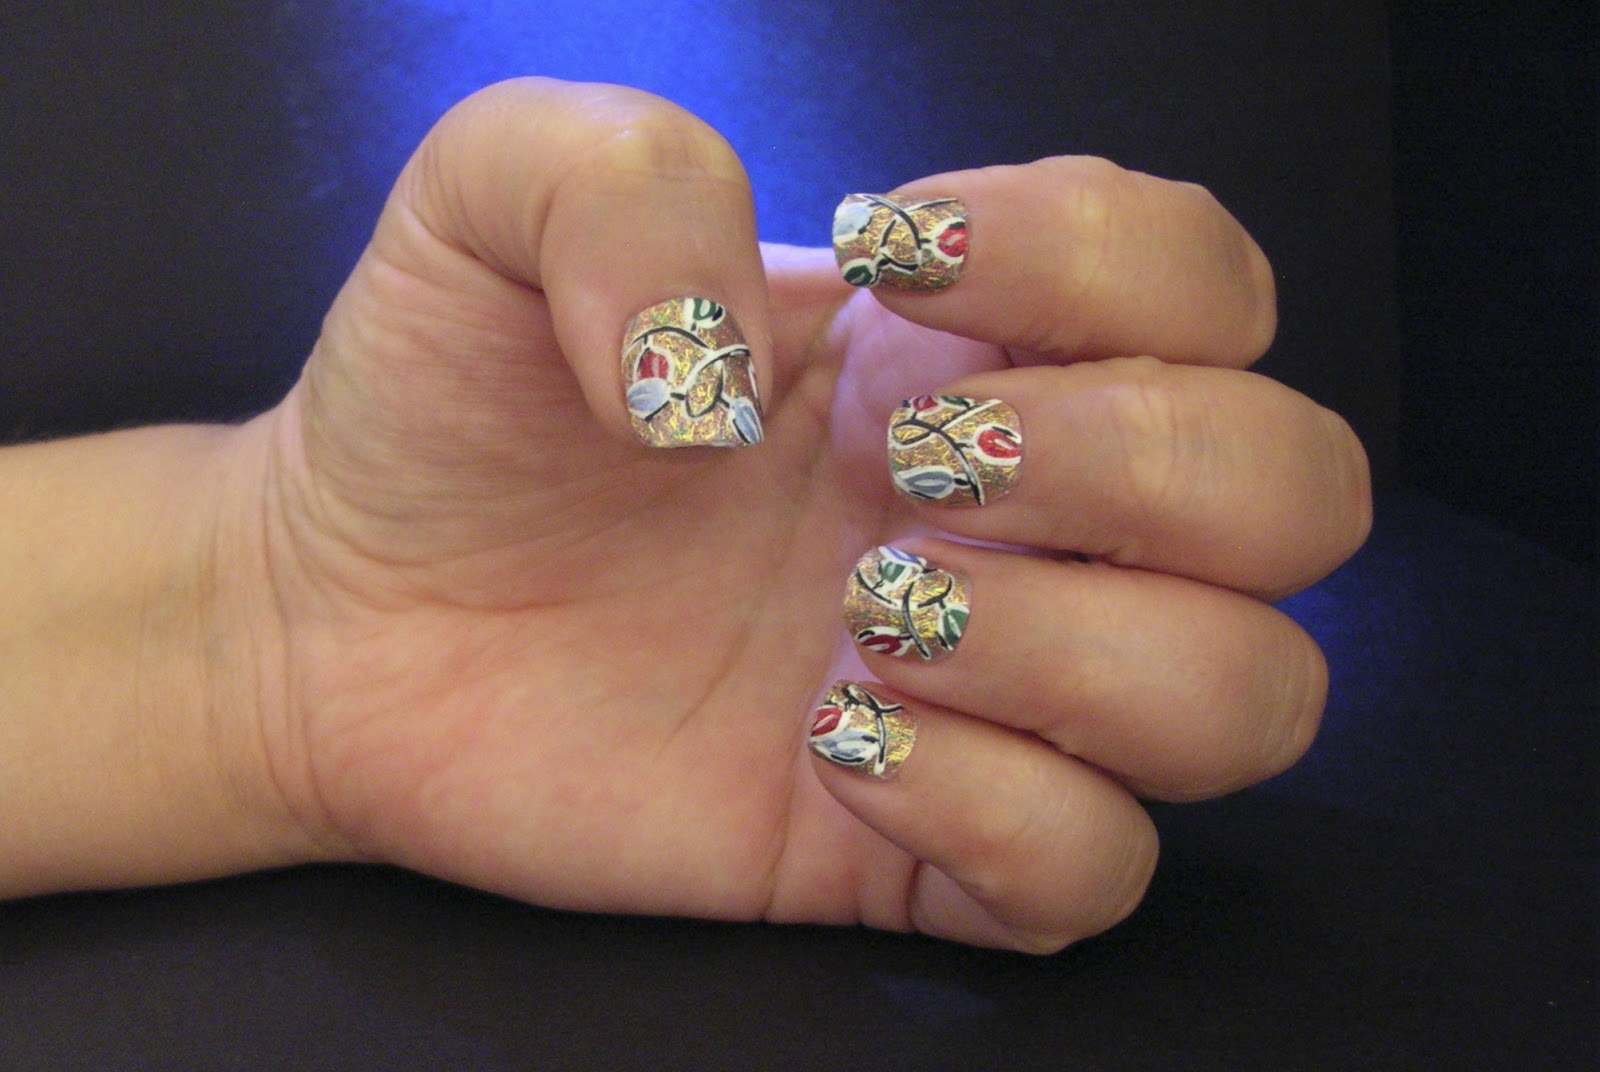 ecklipsed by color: On the Twelfth Day of Christmas, my nail art ...